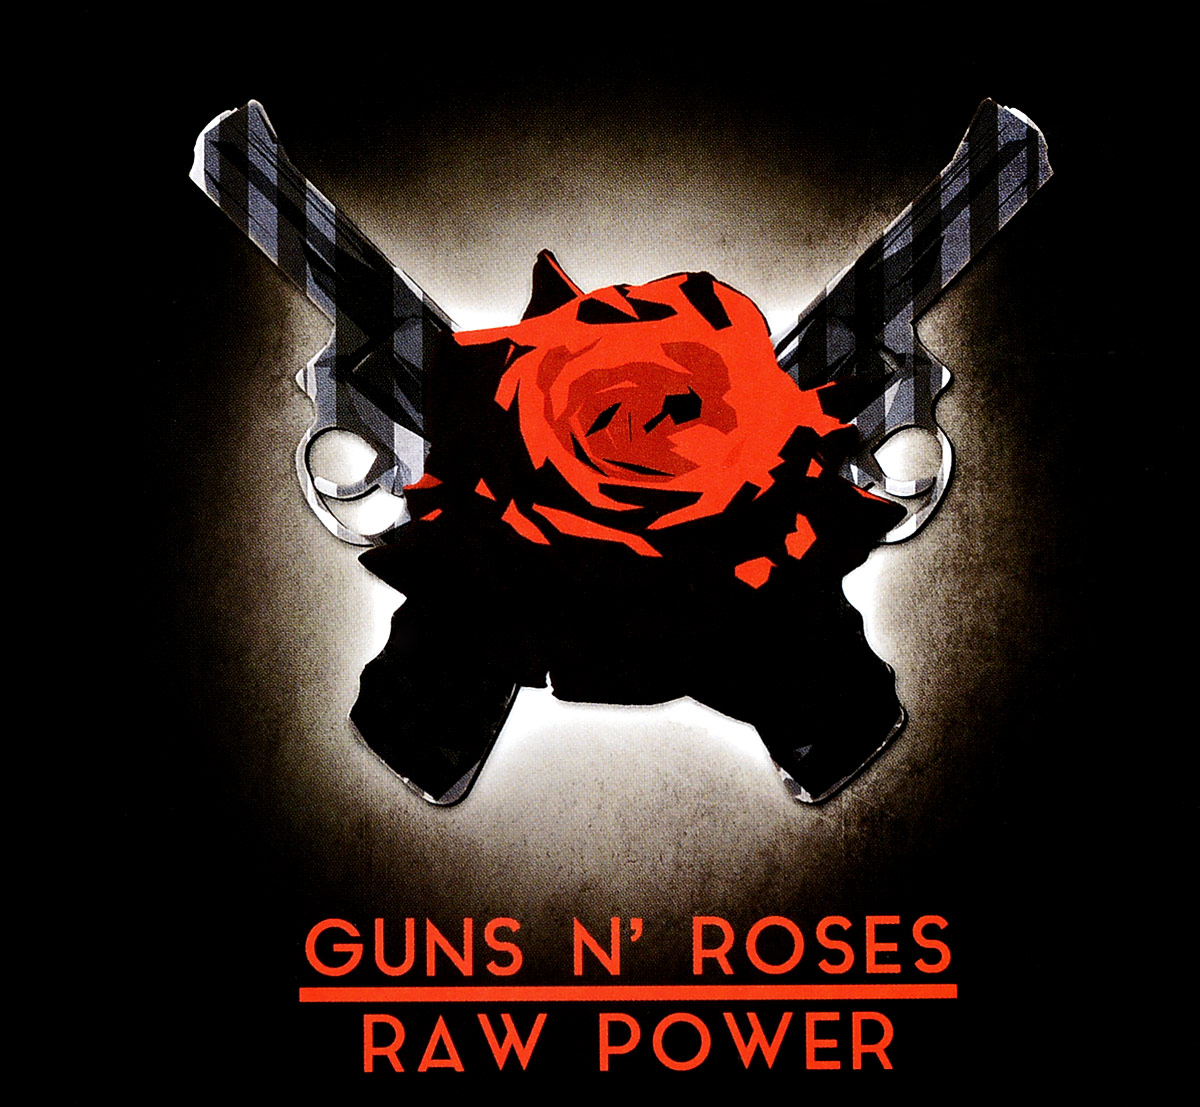 Guns N' Roses: Raw Power (DVD + 2 CD) жертвуя пешкой dvd